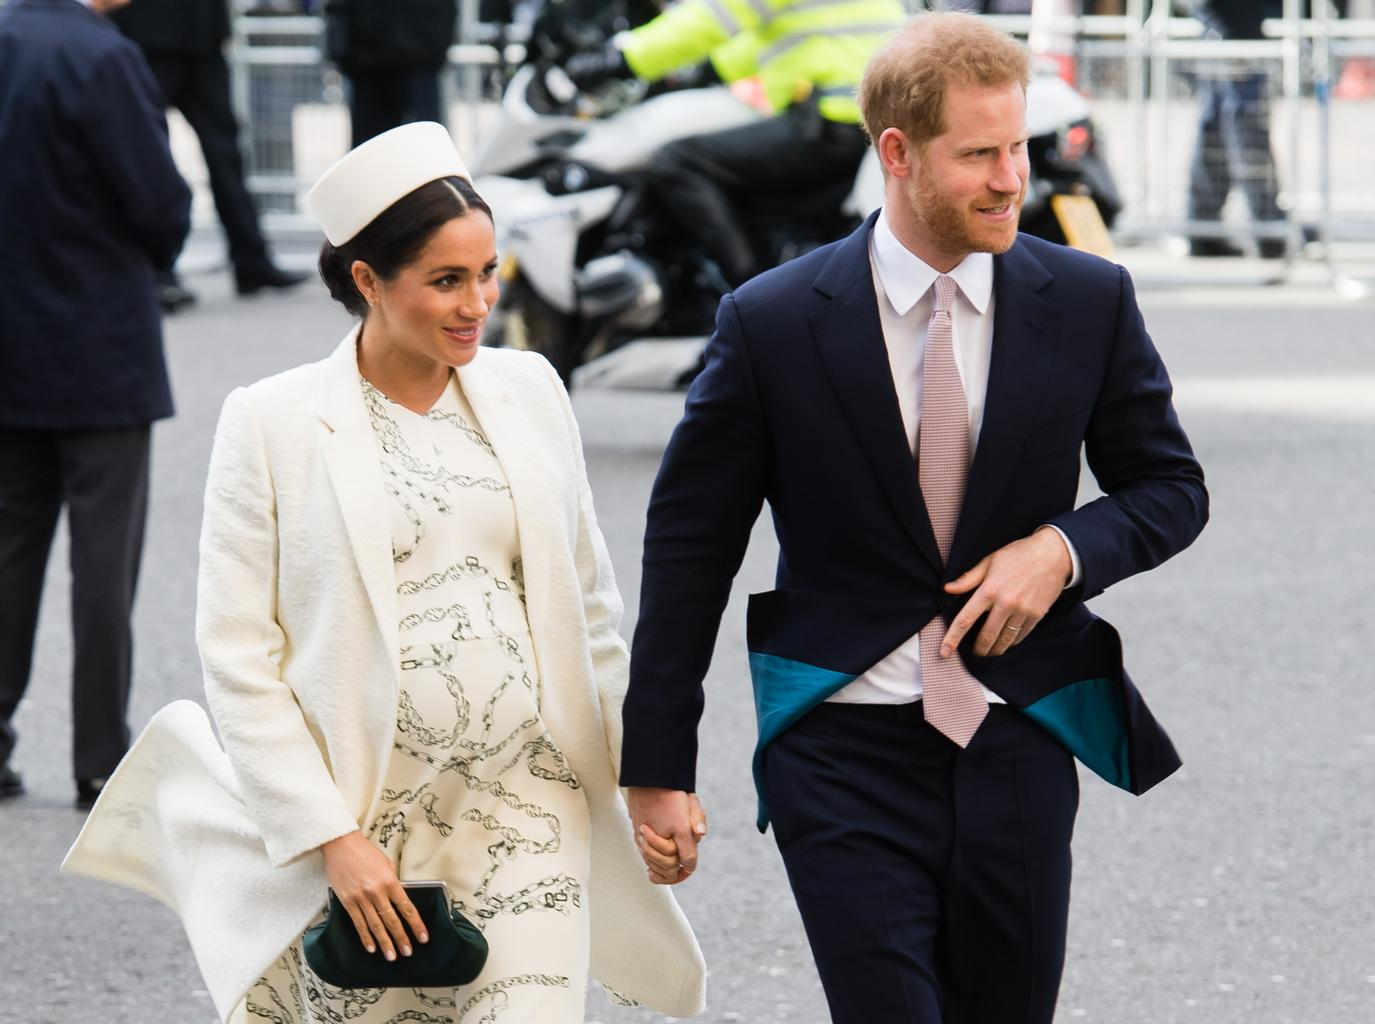 Meghan Markle manipulating Prince Harry to endear herself to British public?